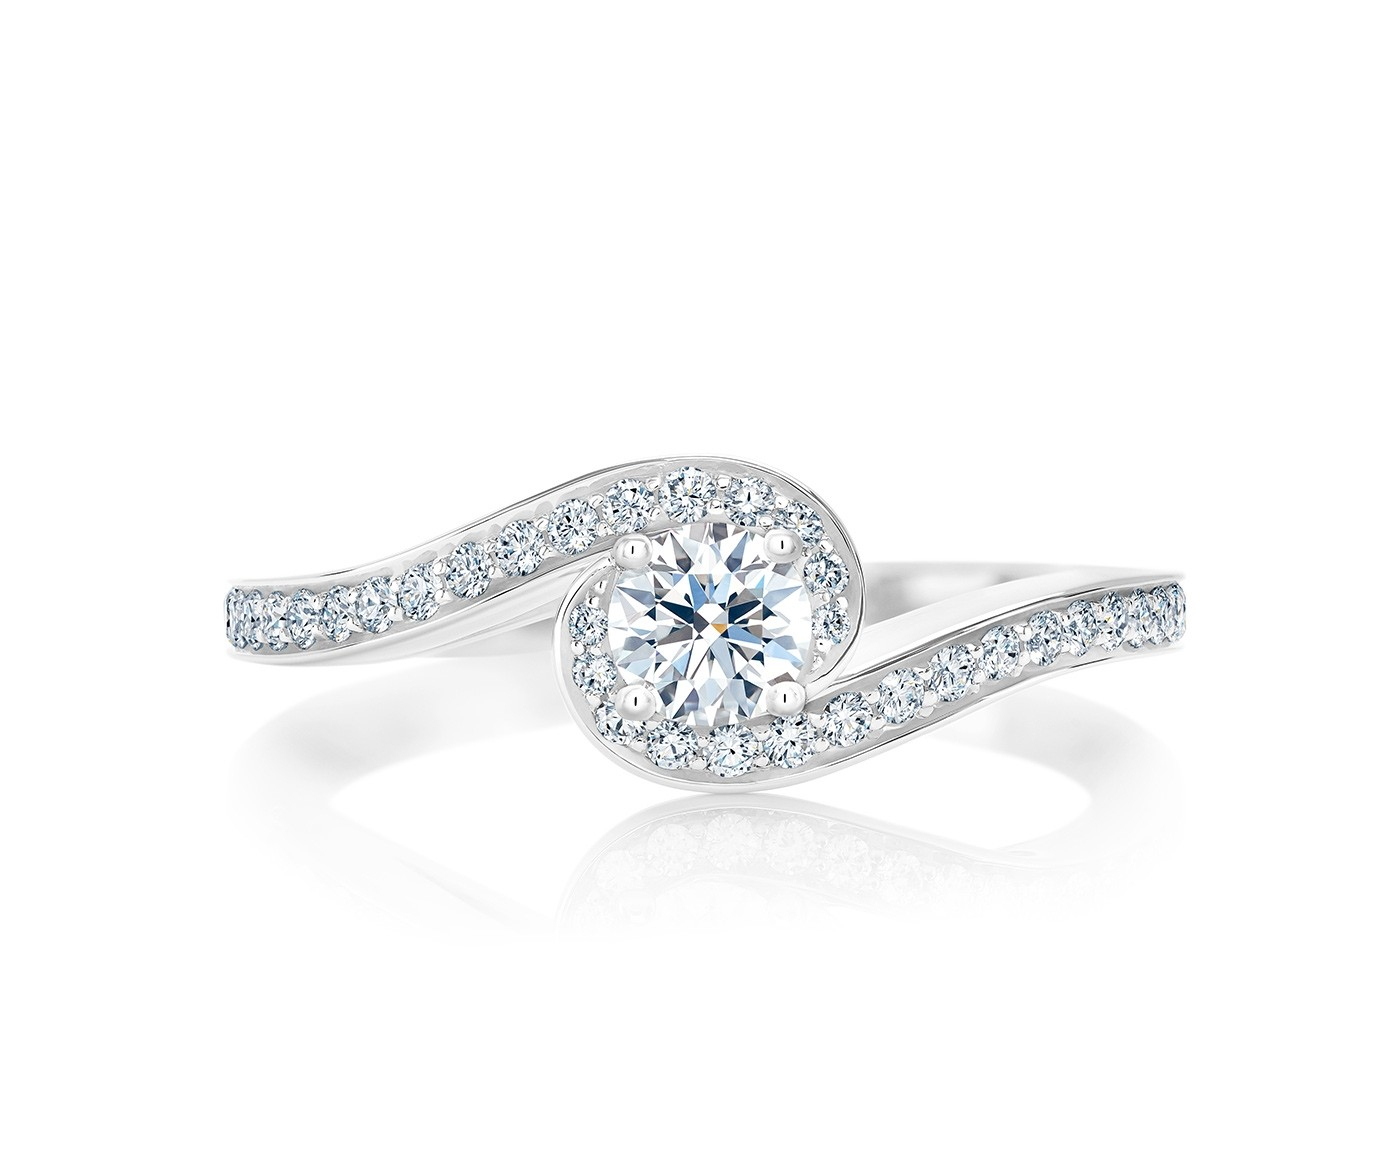 Diamond Engagement Rings | Bridal | De Beers Inside 2018 Sparkling Twisted Lines Rings (View 7 of 25)